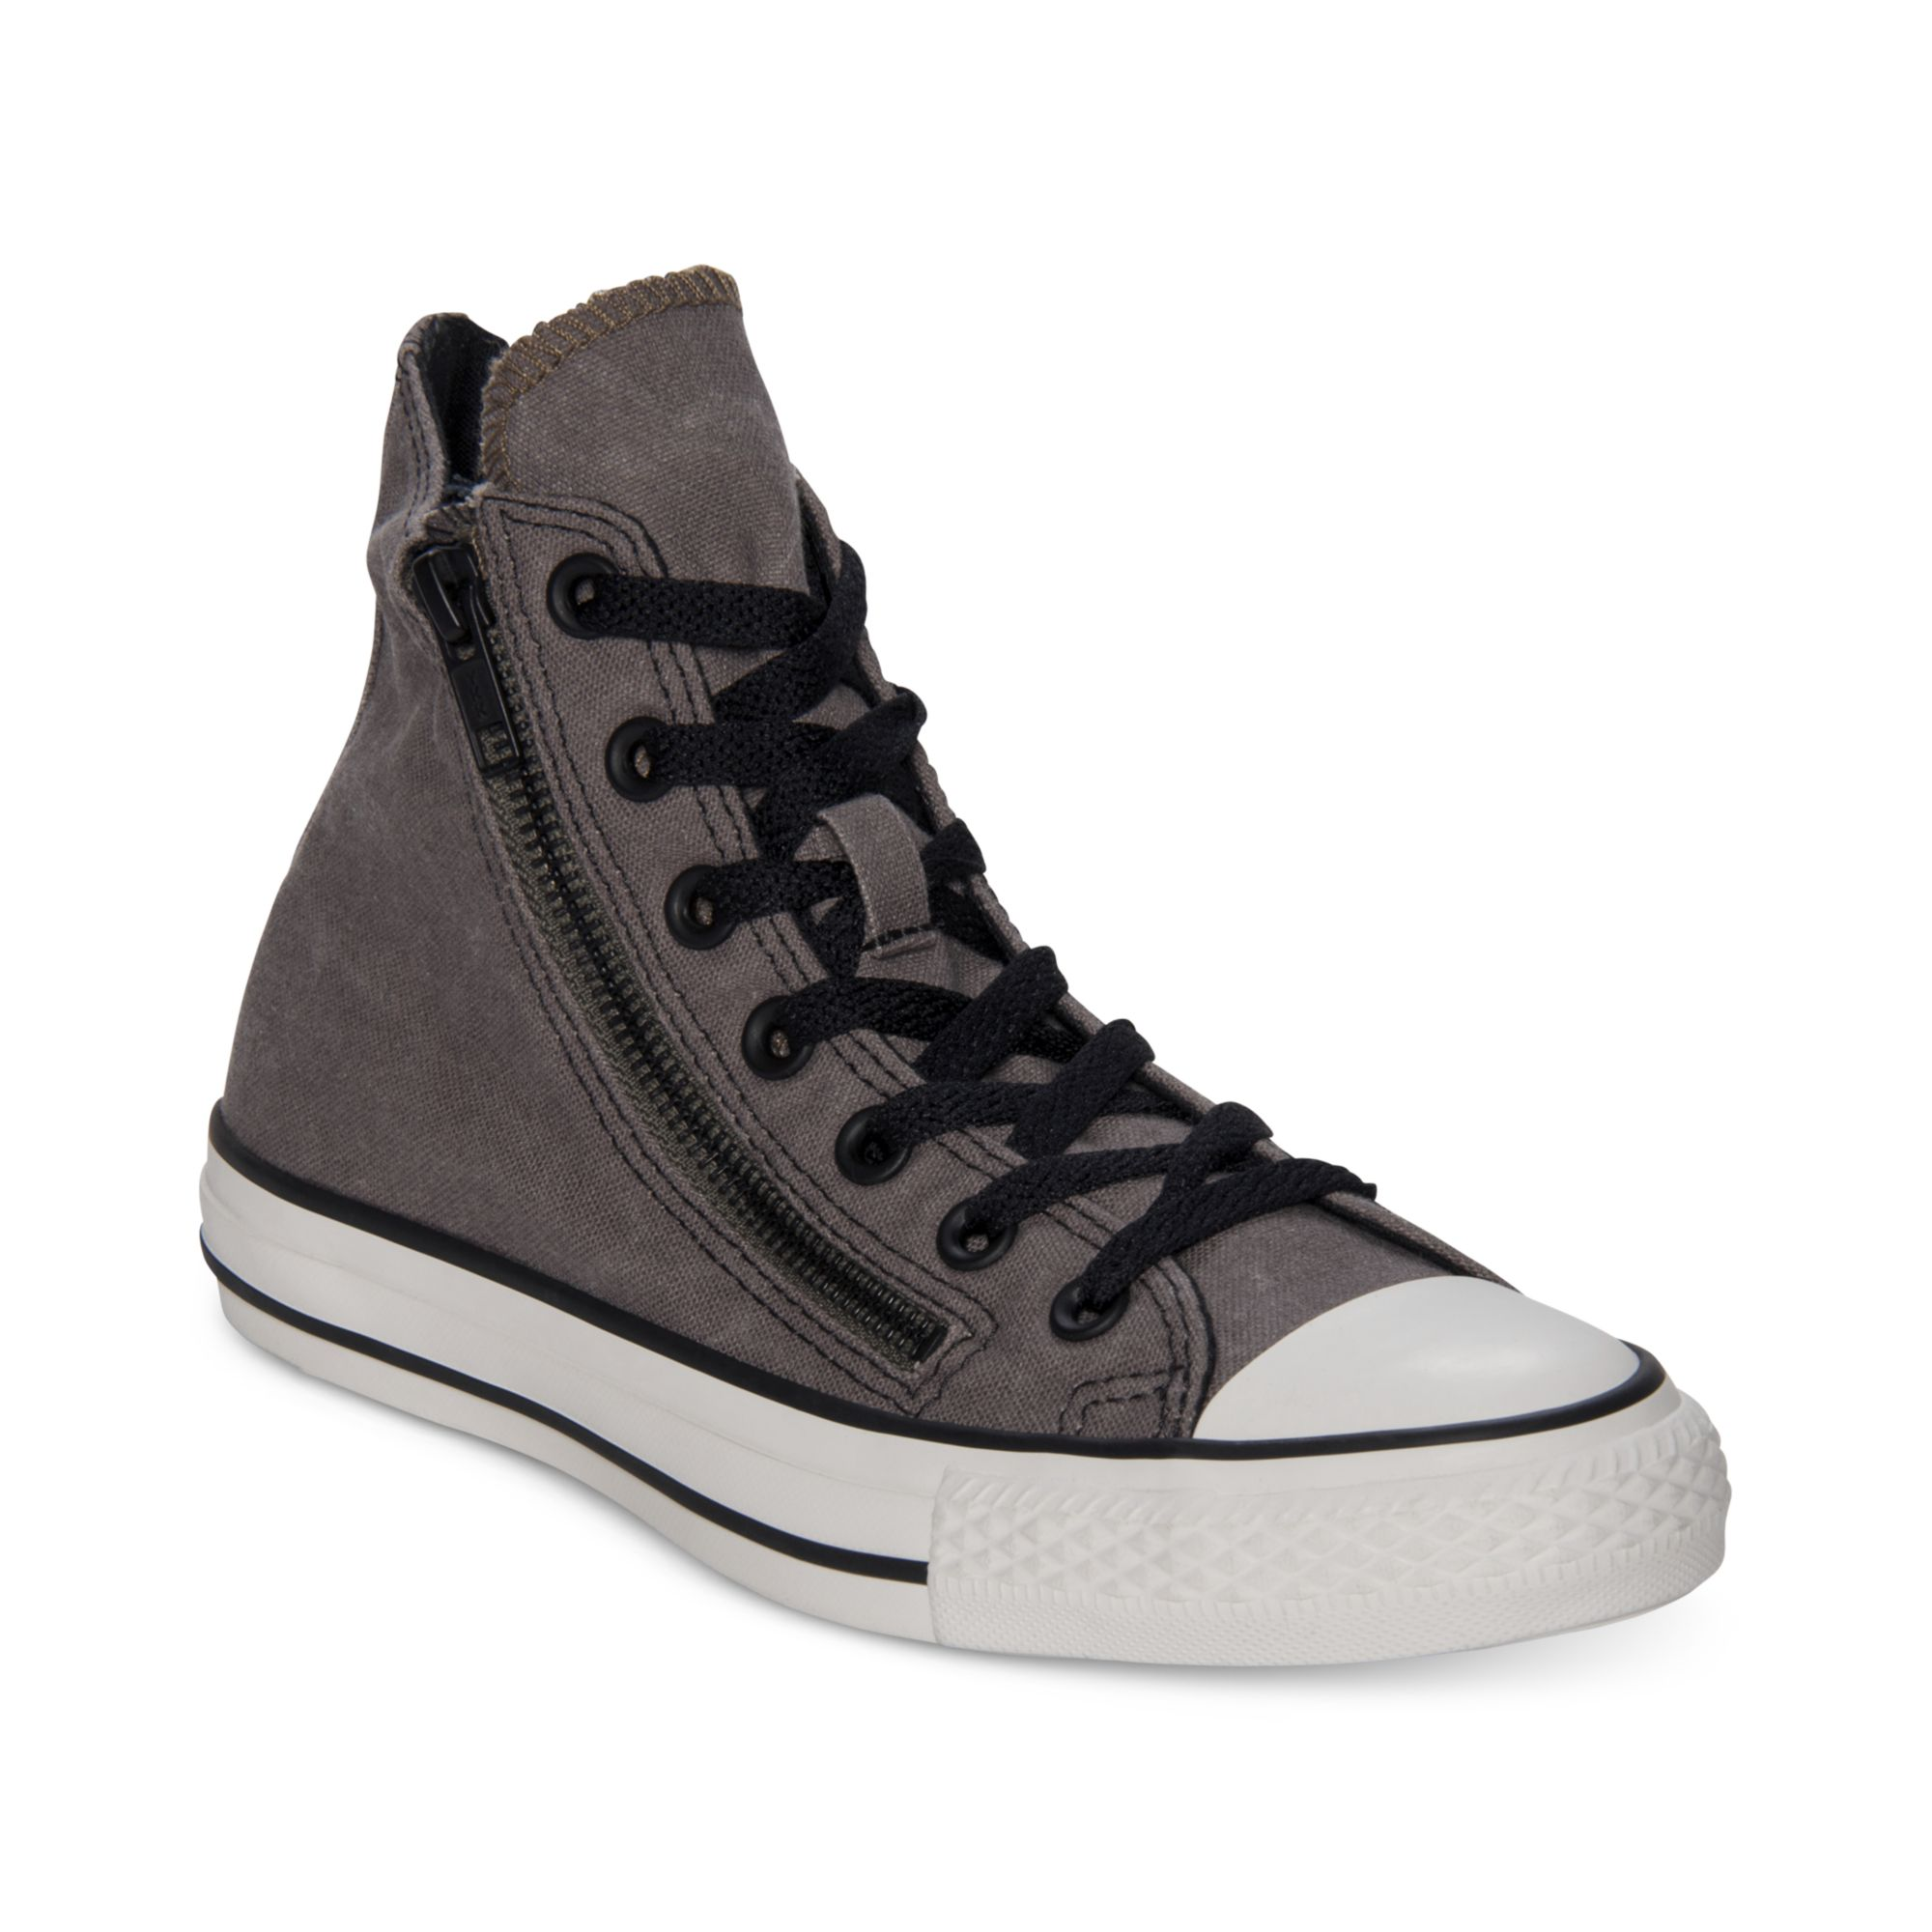 3a2a4e909bad Lyst - Converse Chuck Taylor All Star Double Zip Hi Casual Sneakers ...